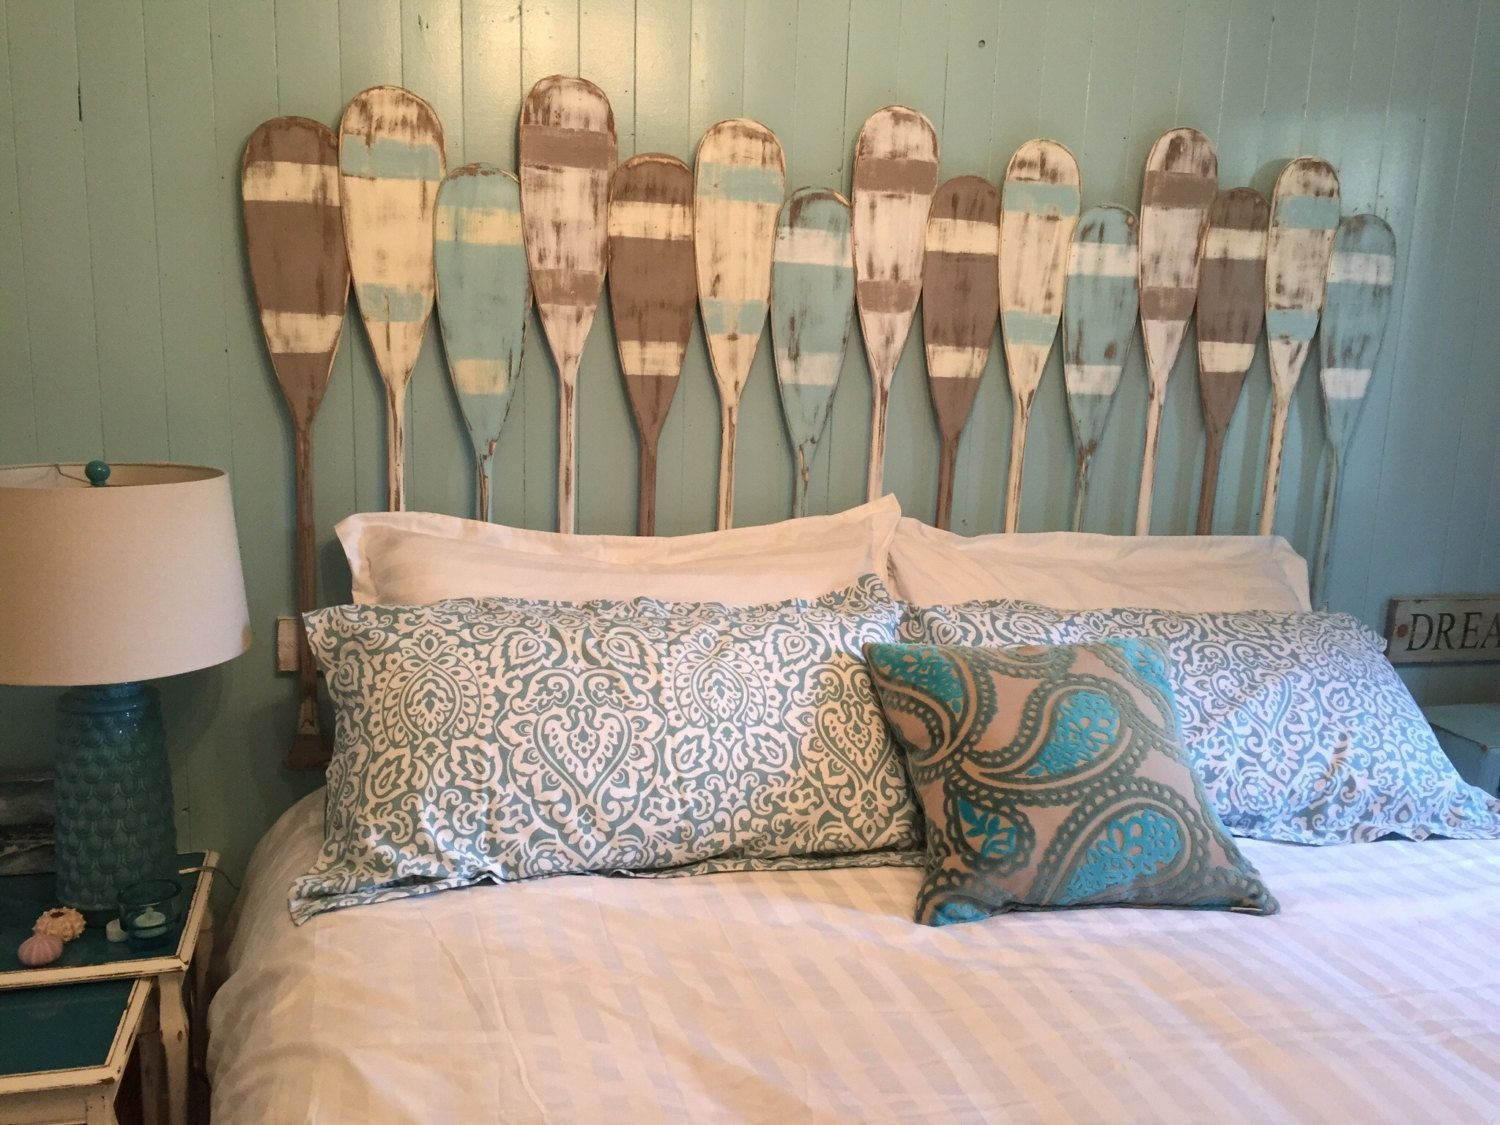 Painted Paddle Oar Headboard King Size Beach House Coastal Paddleboardpictures With Images Beach House Furniture Coastal Style Bedroom Beach House Interior